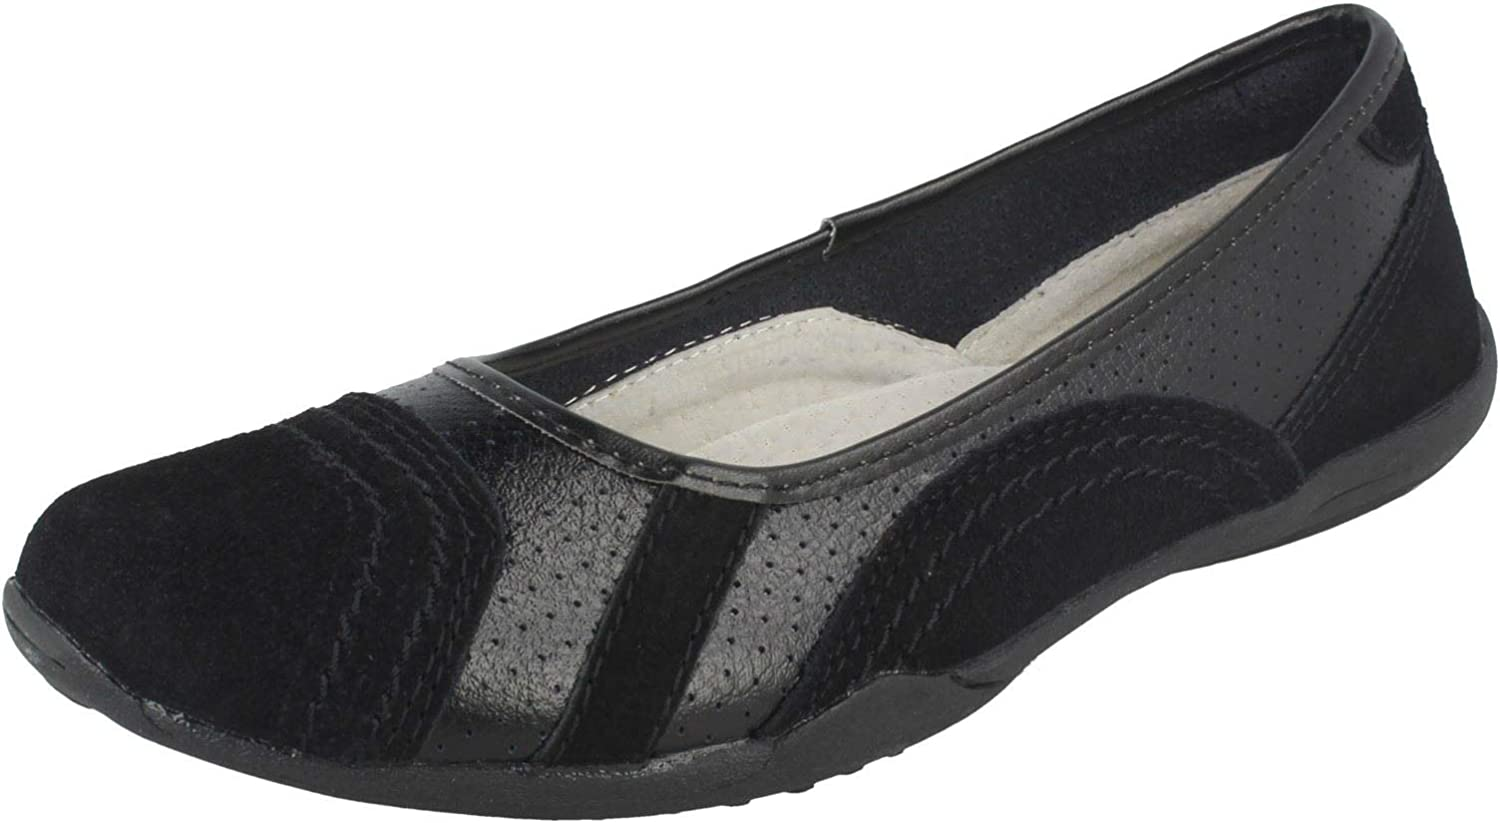 Down To Earth Ladies Flat Ballerina Shoes